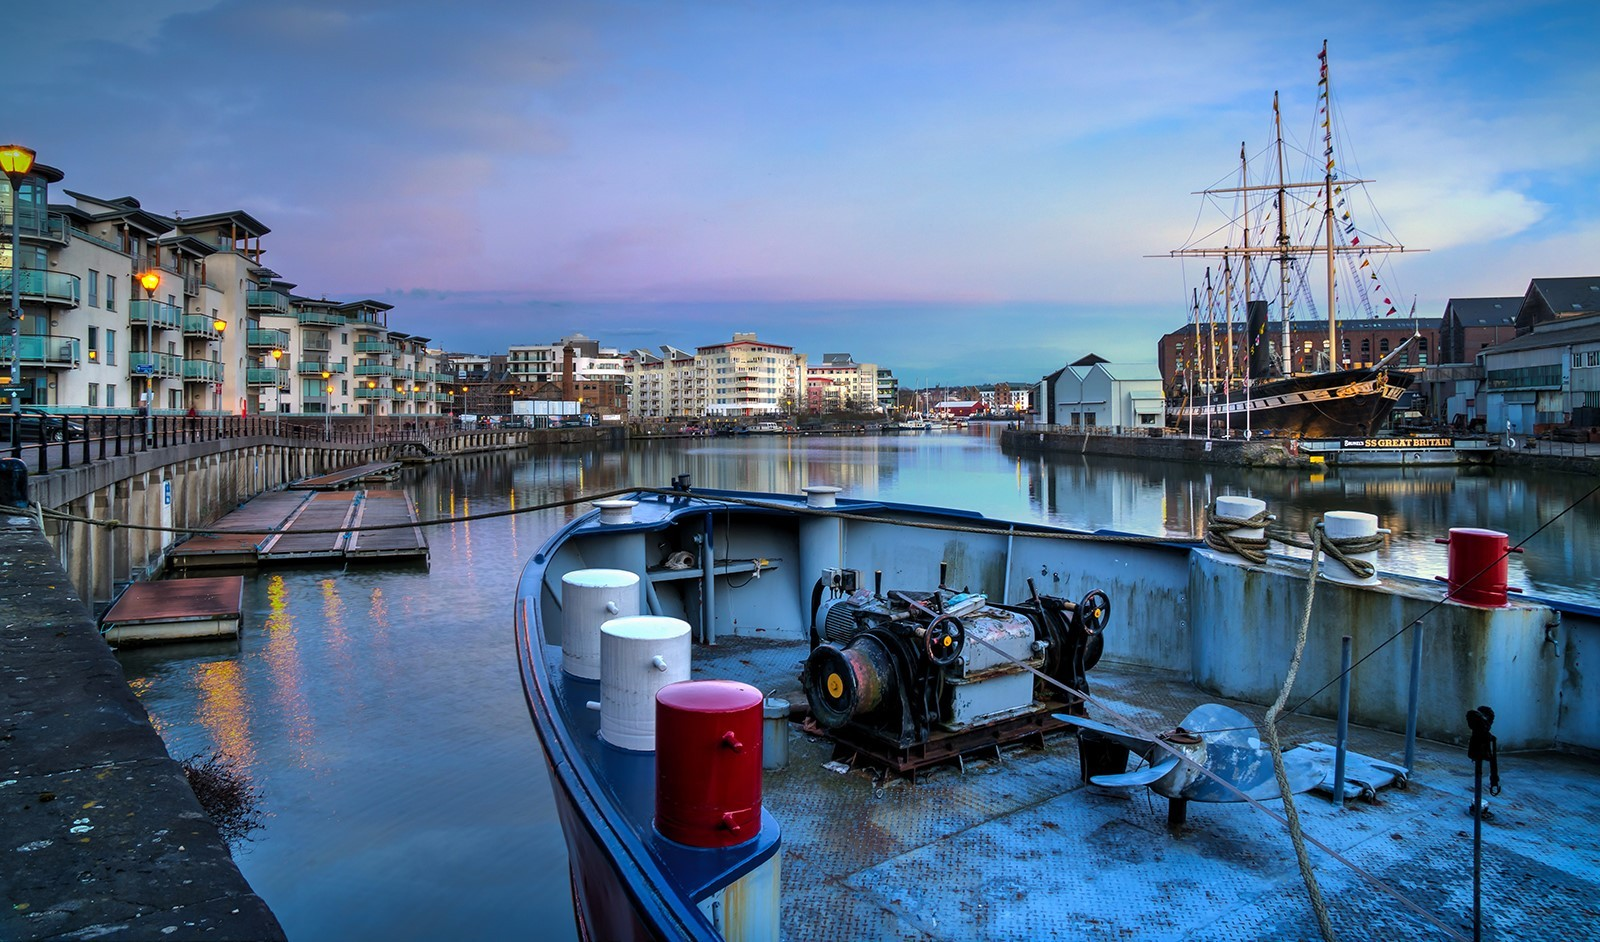 Evening Light on Bristol Waterfront